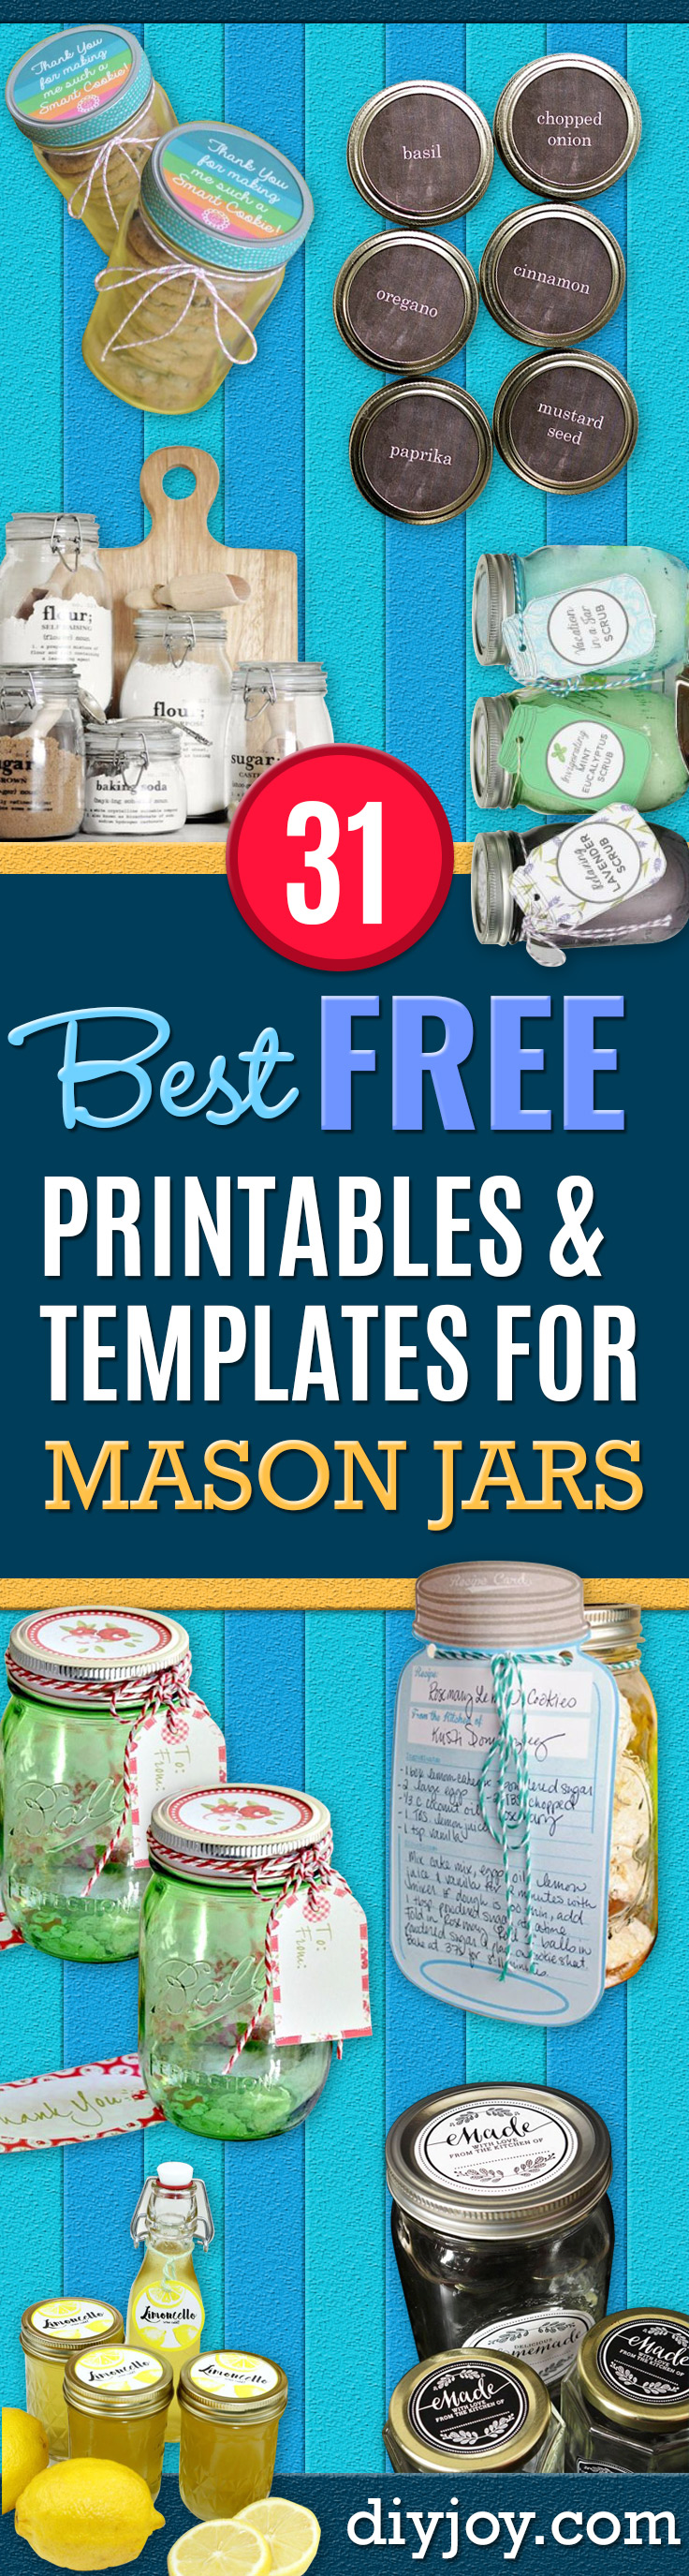 photograph relating to Printable Mason Jar Template named 31 Least complicated Free of charge Printables and Templates for Mason Jars